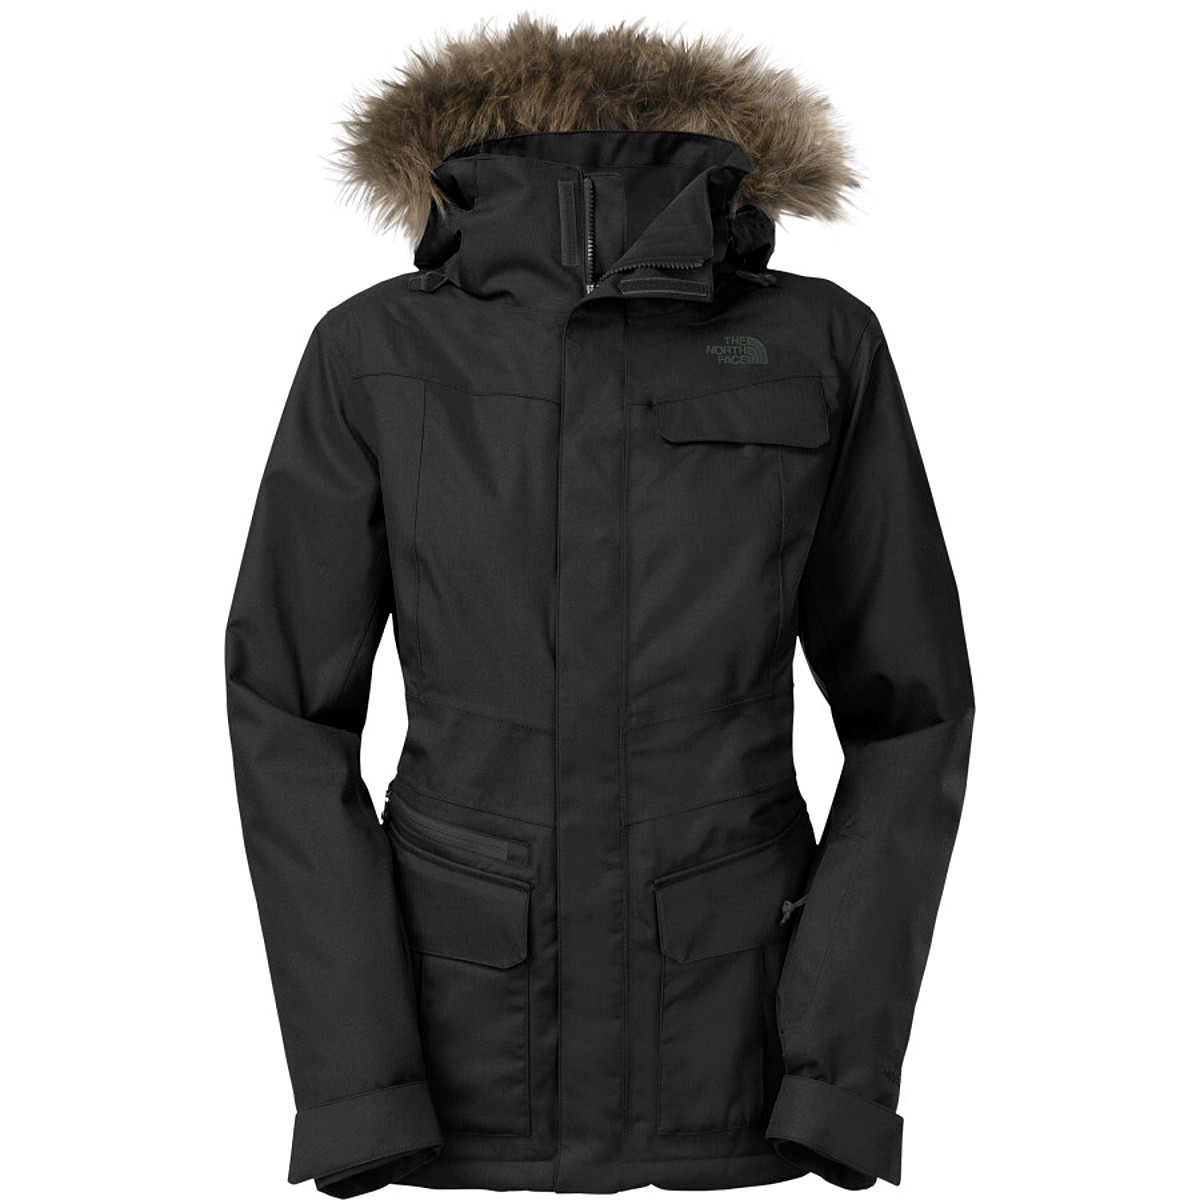 The North Face Baker Delux Jacket